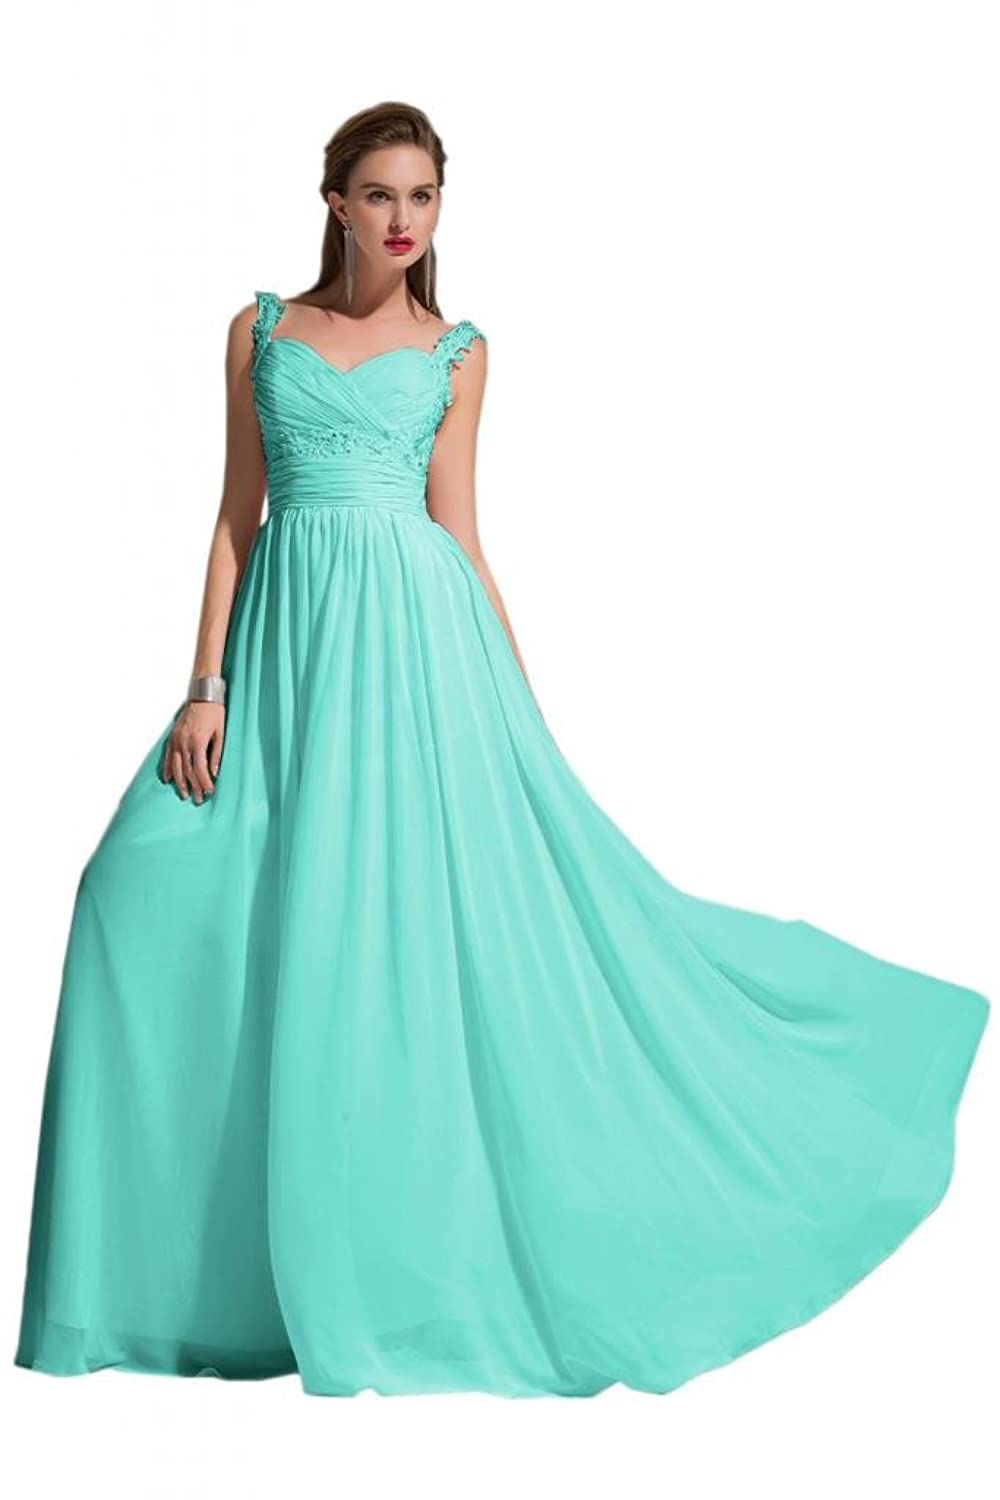 Sunvary Satin One Shoulder Draped Ruffle Evening Prom Dresses for Women